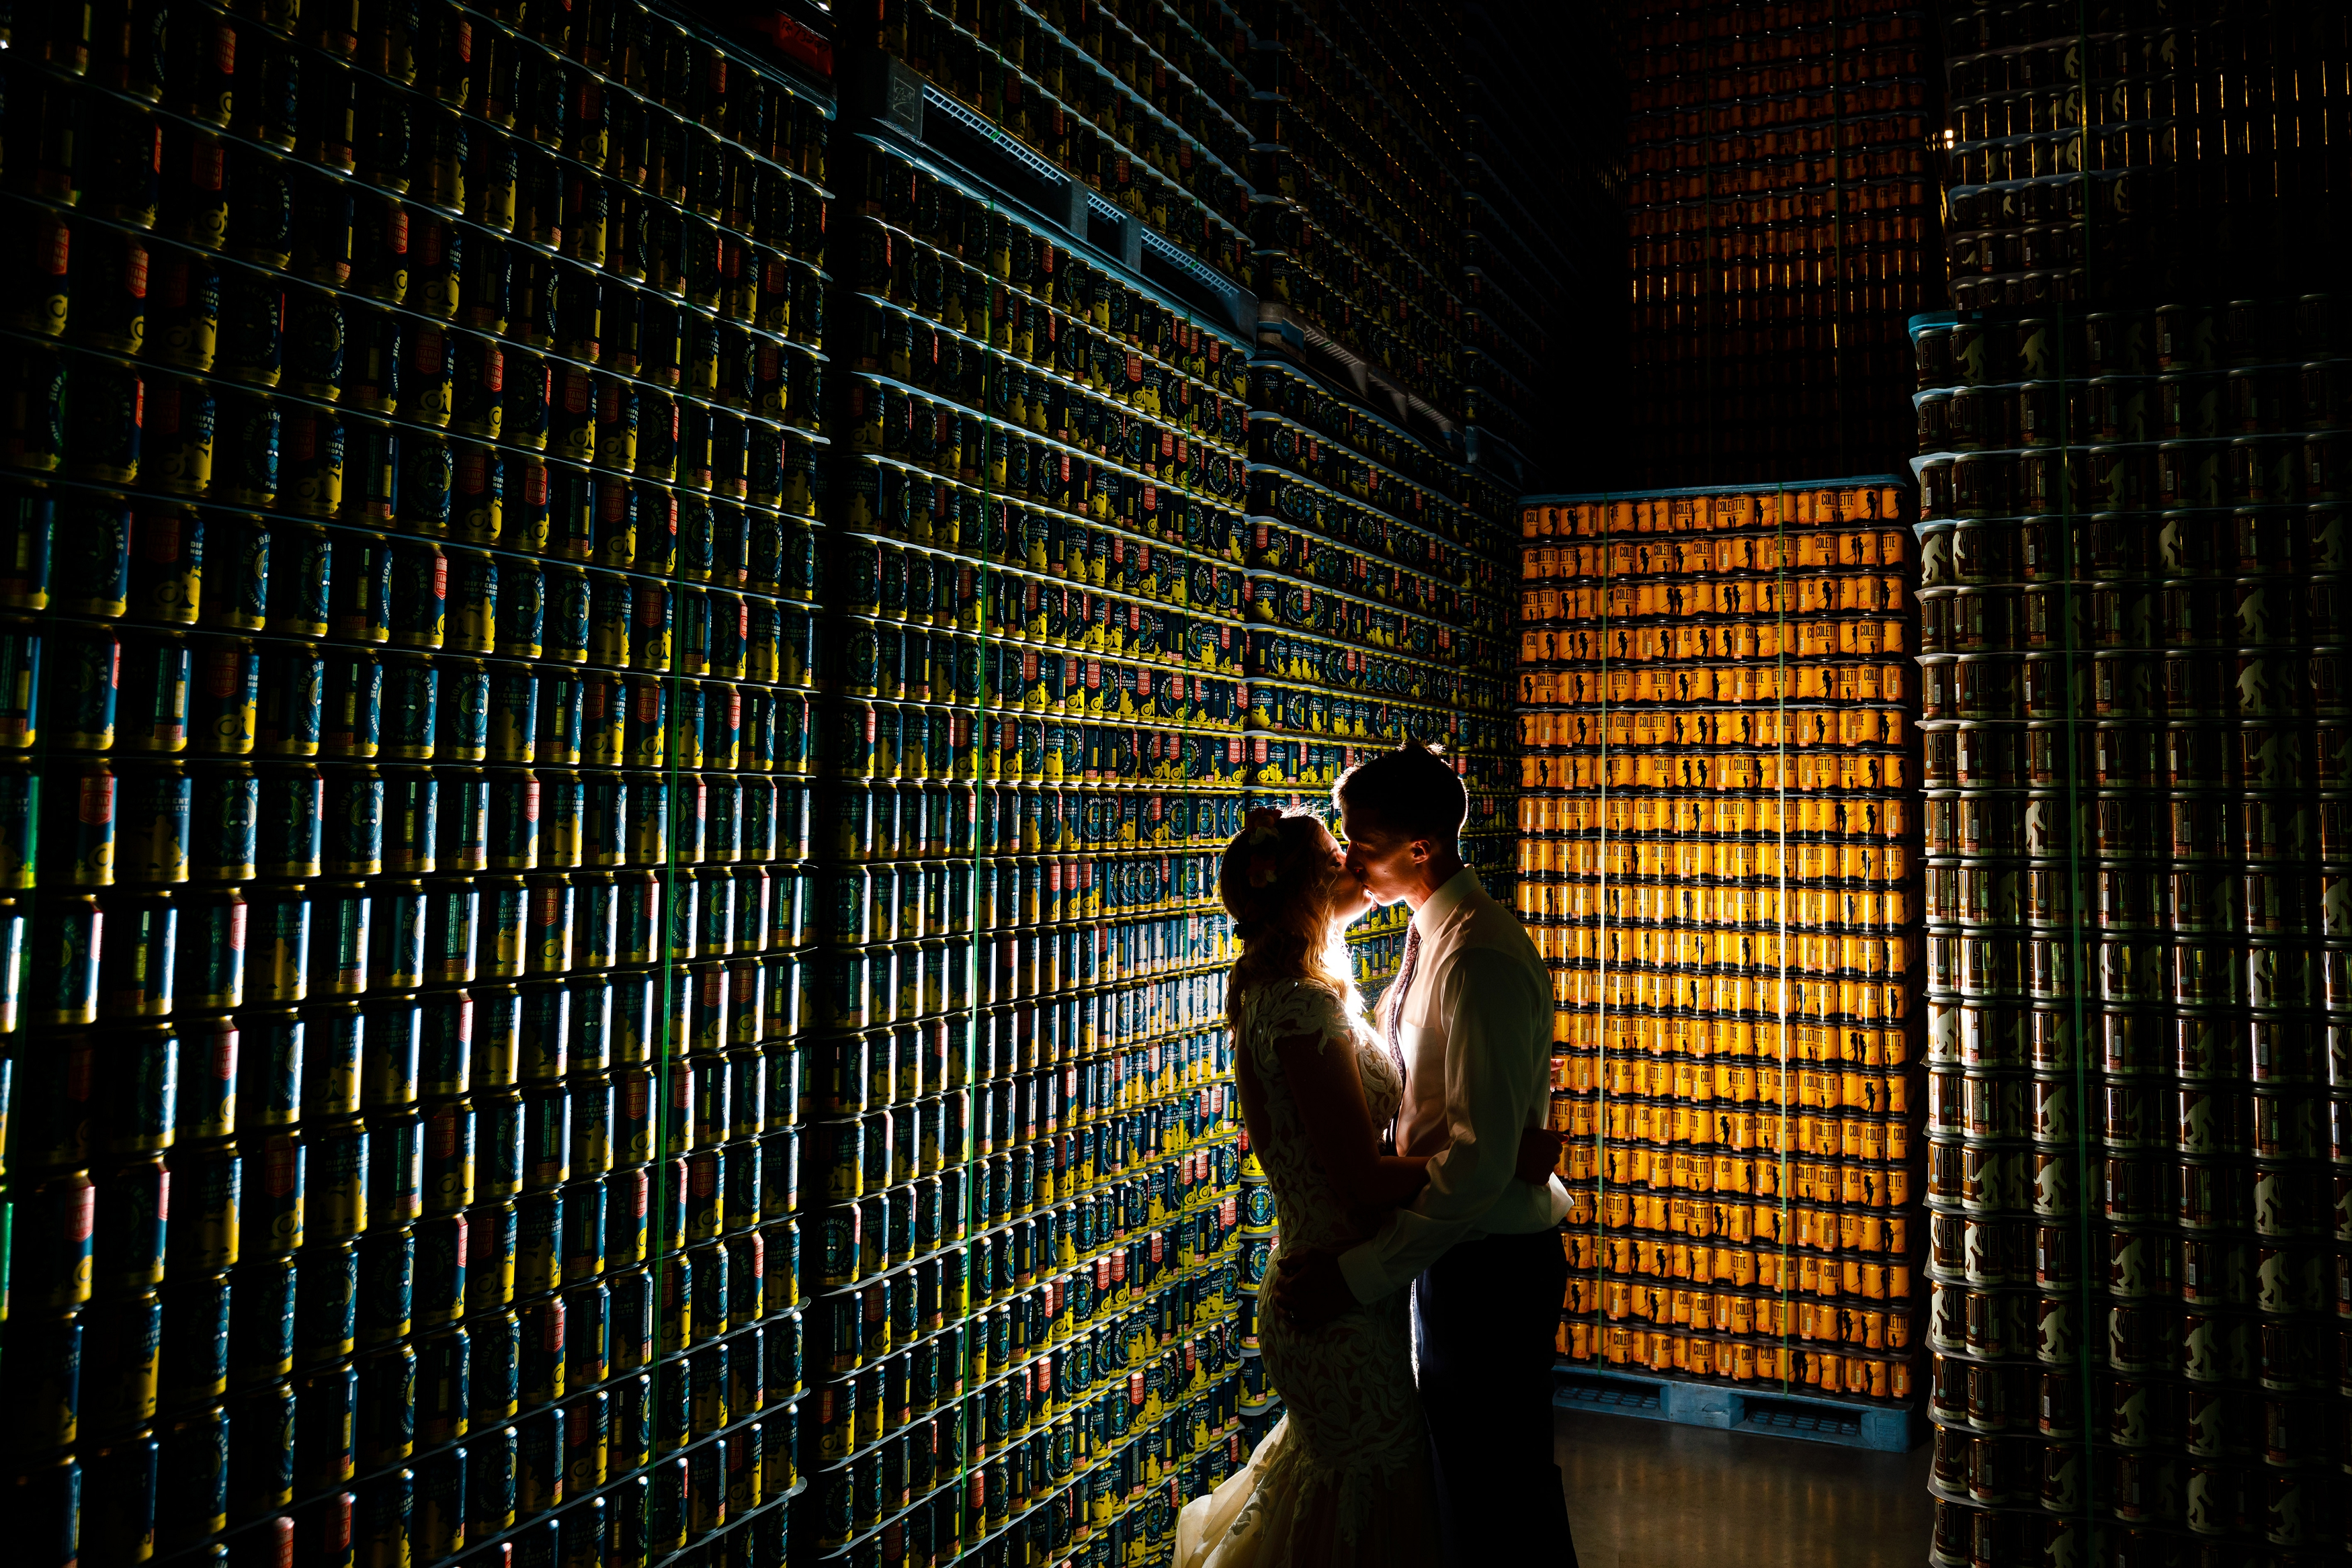 A nightcap portrait of Jake & Jessica in front of thousands of Great Divide beer cans during their wedding reception at Great Divide Brewery.